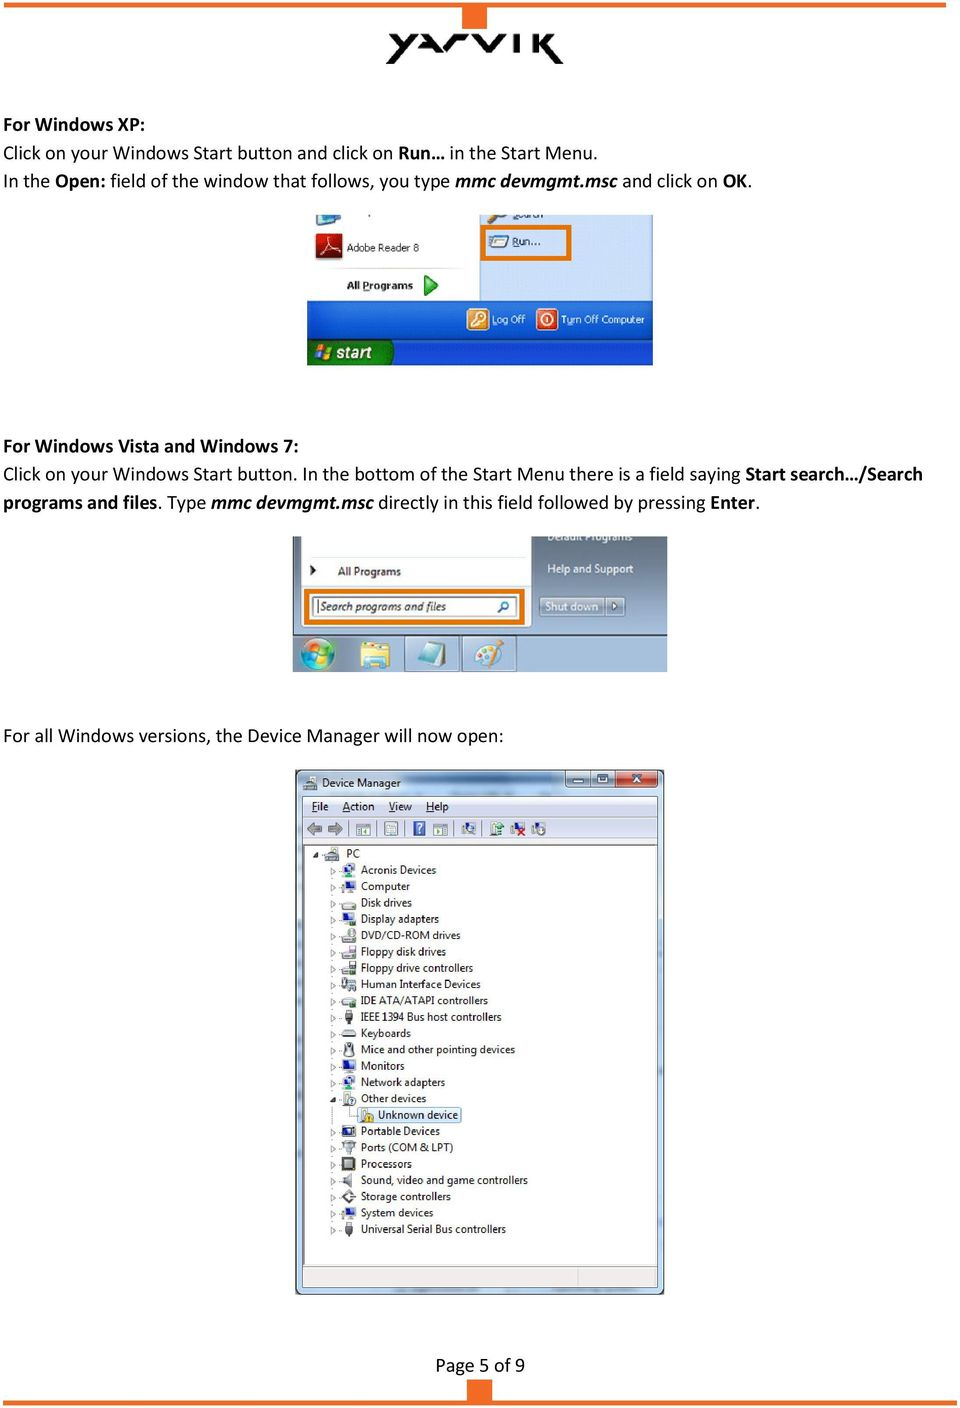 For Windows Vista and Windows 7: Click on your Windows Start button.